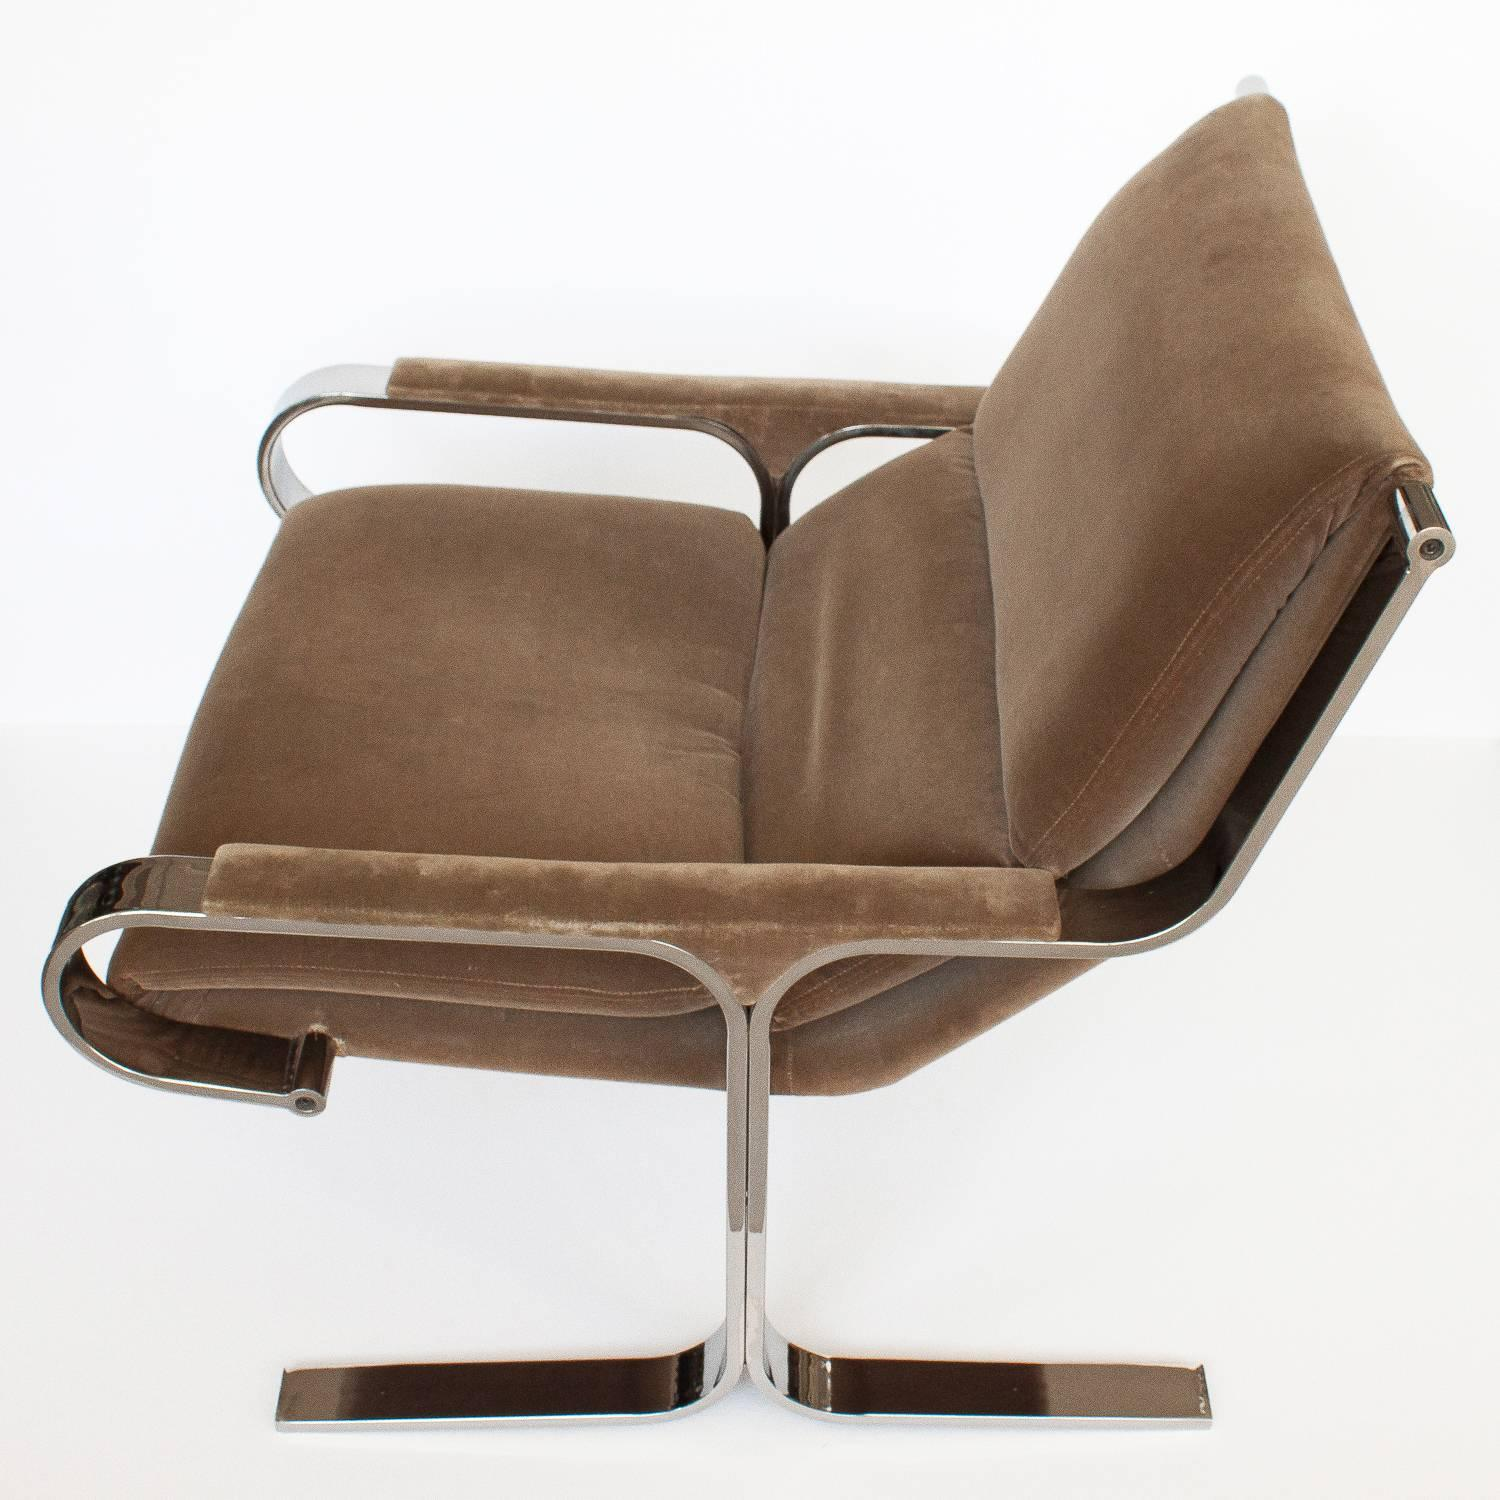 Milo Baughman Style Chrome Lounge Chair For Sale at 1stdibs